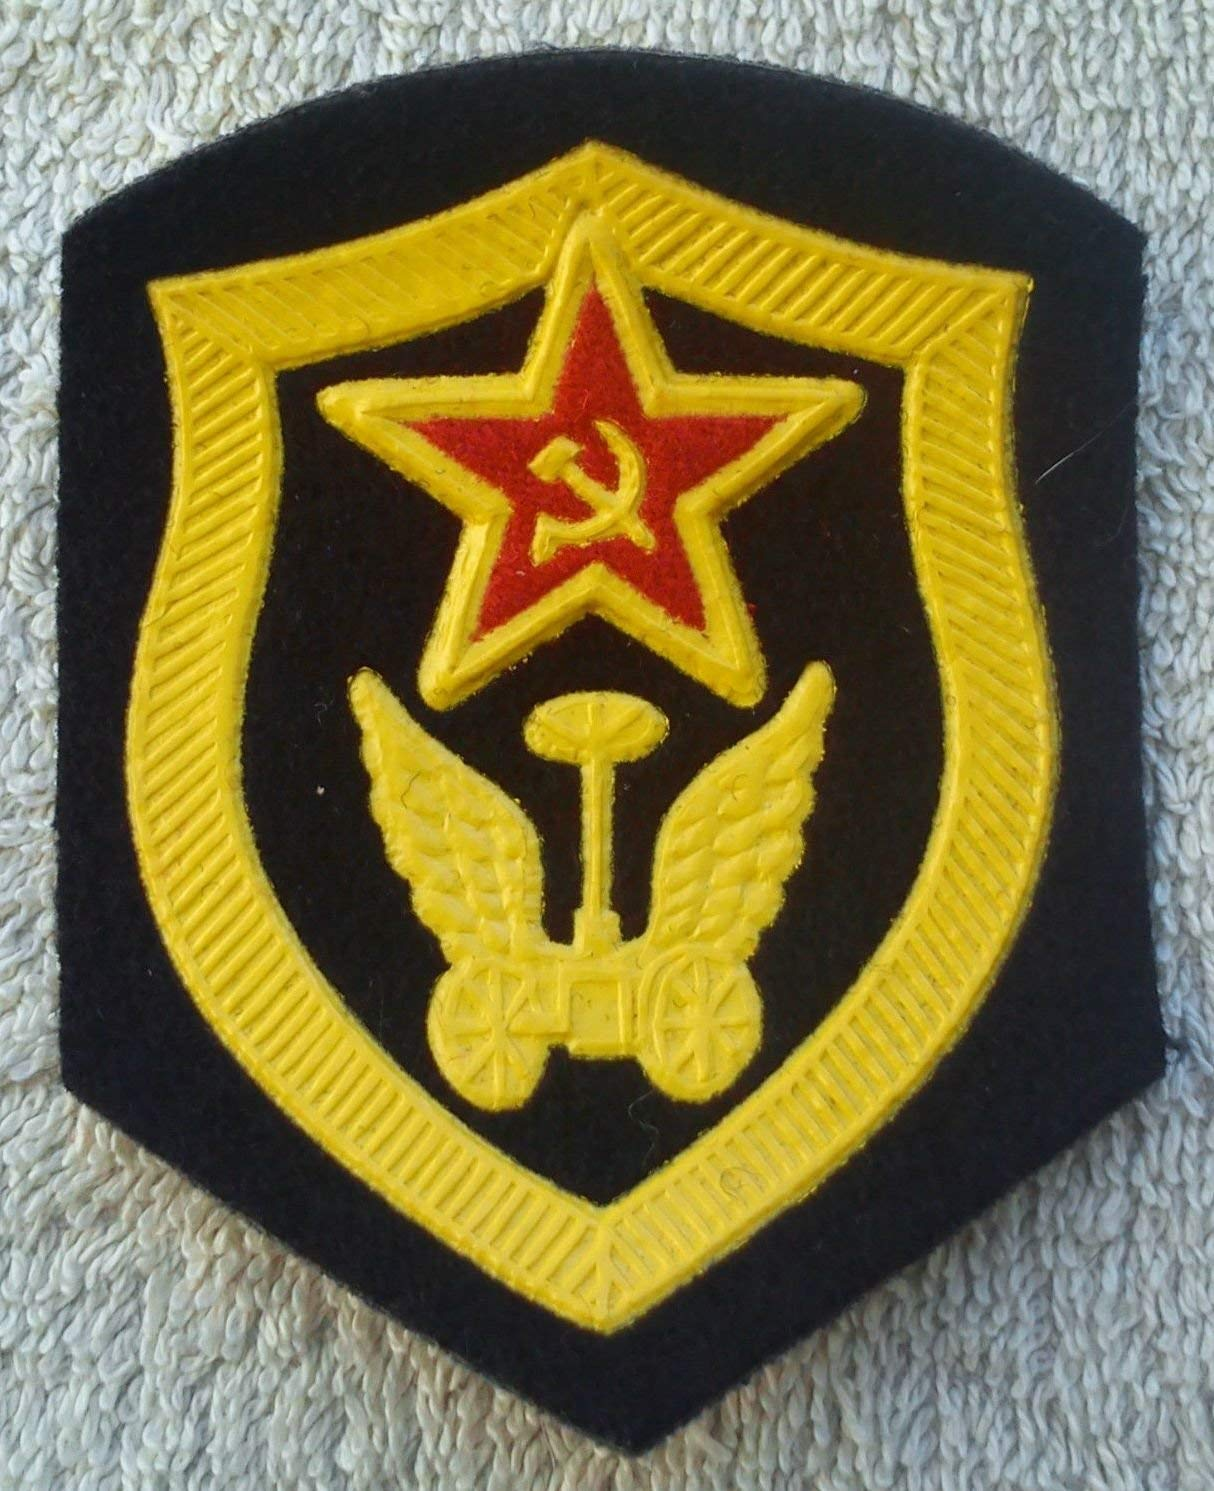 Car Transportation troops Patch USSR Soviet Union Russian Armed Forces Military Uniform Cold War Era